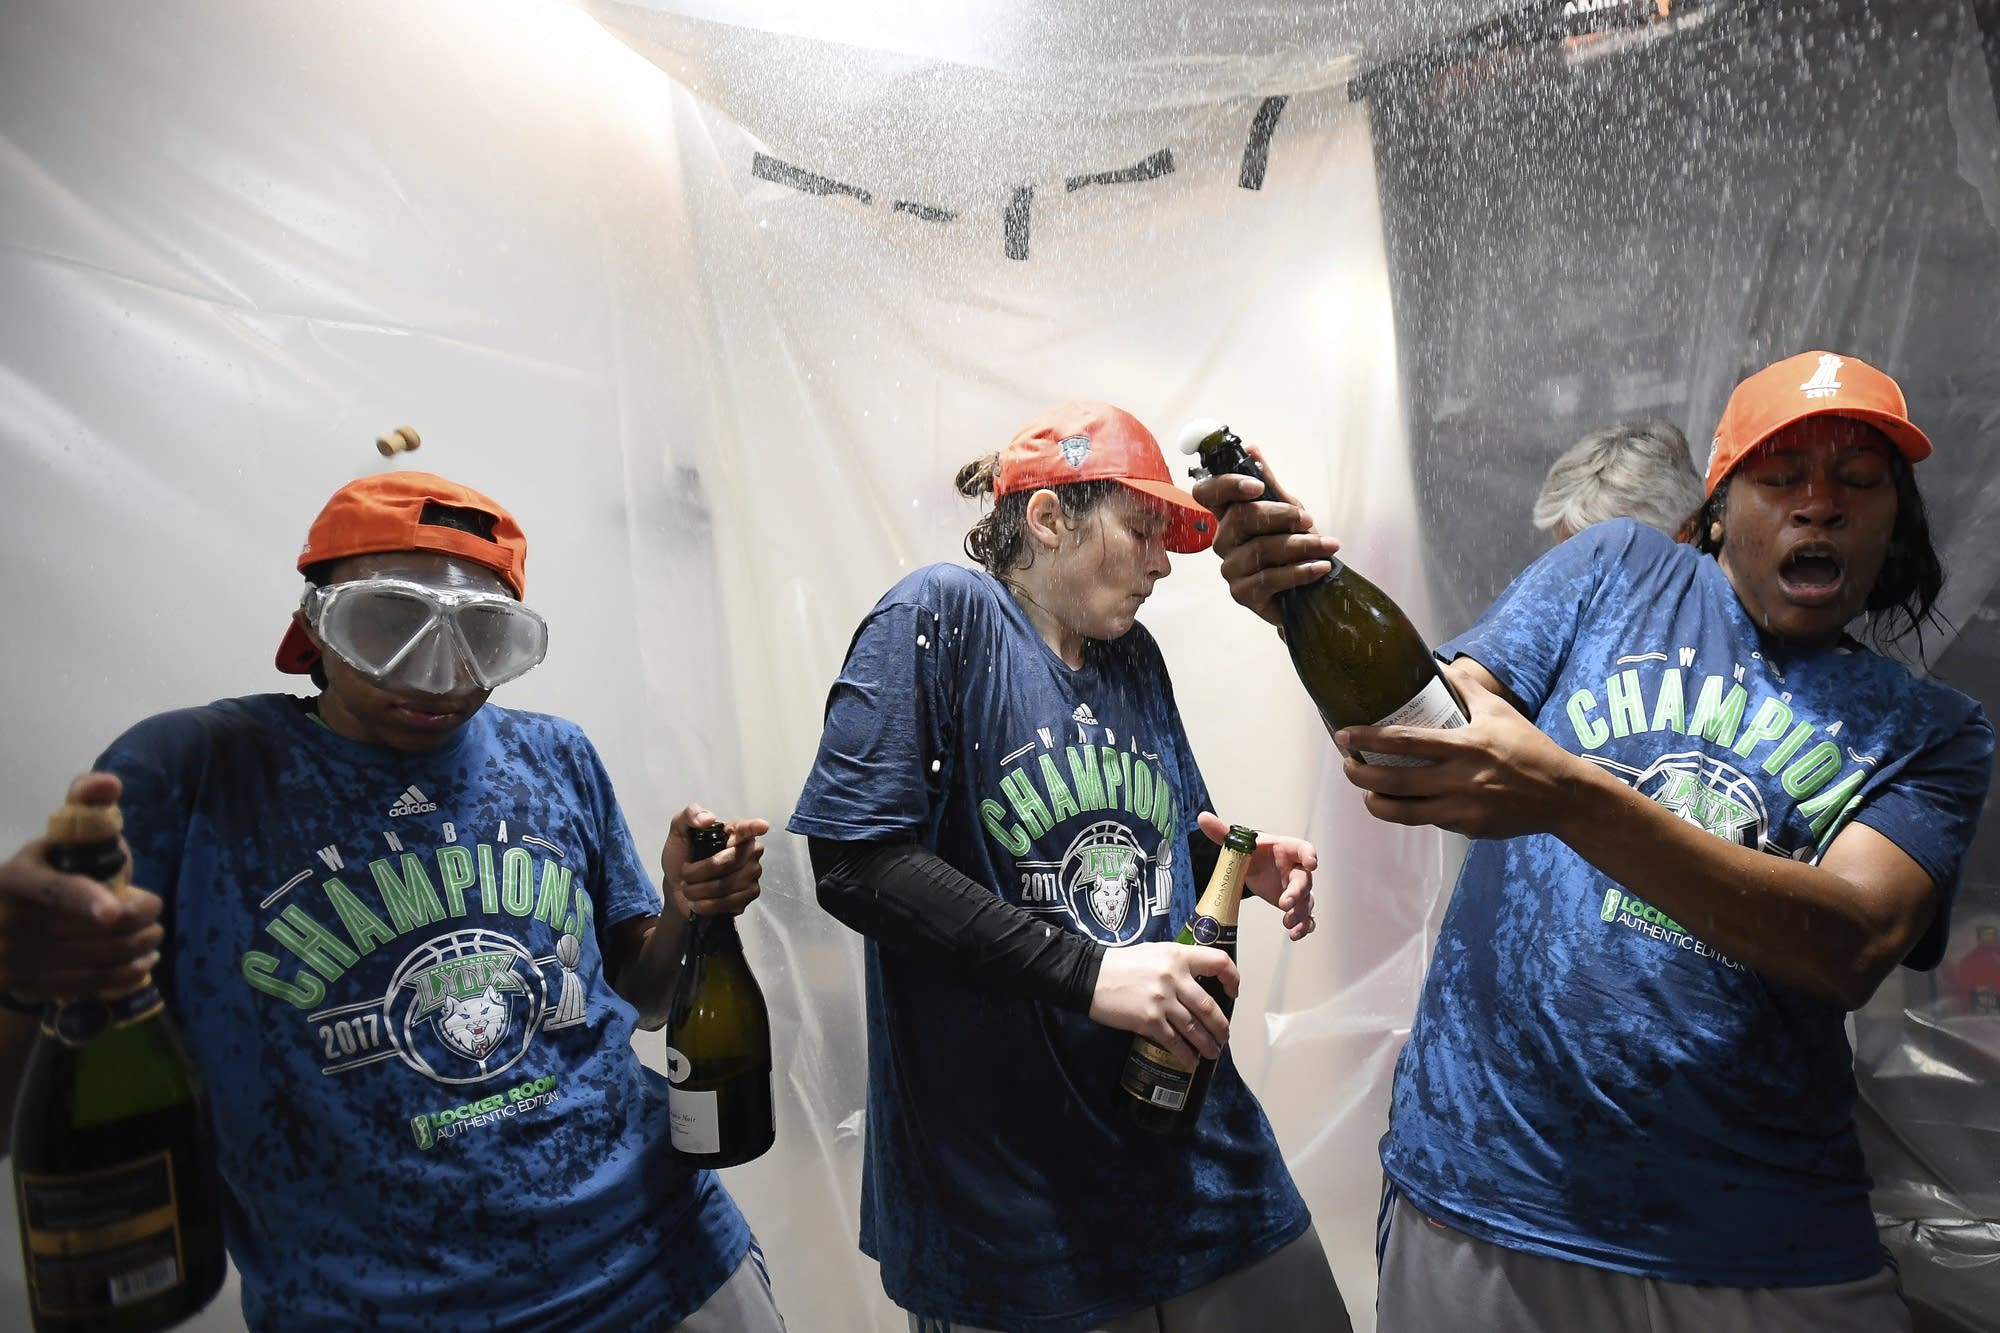 Lynx player celebrate with champagne after winning the championship.